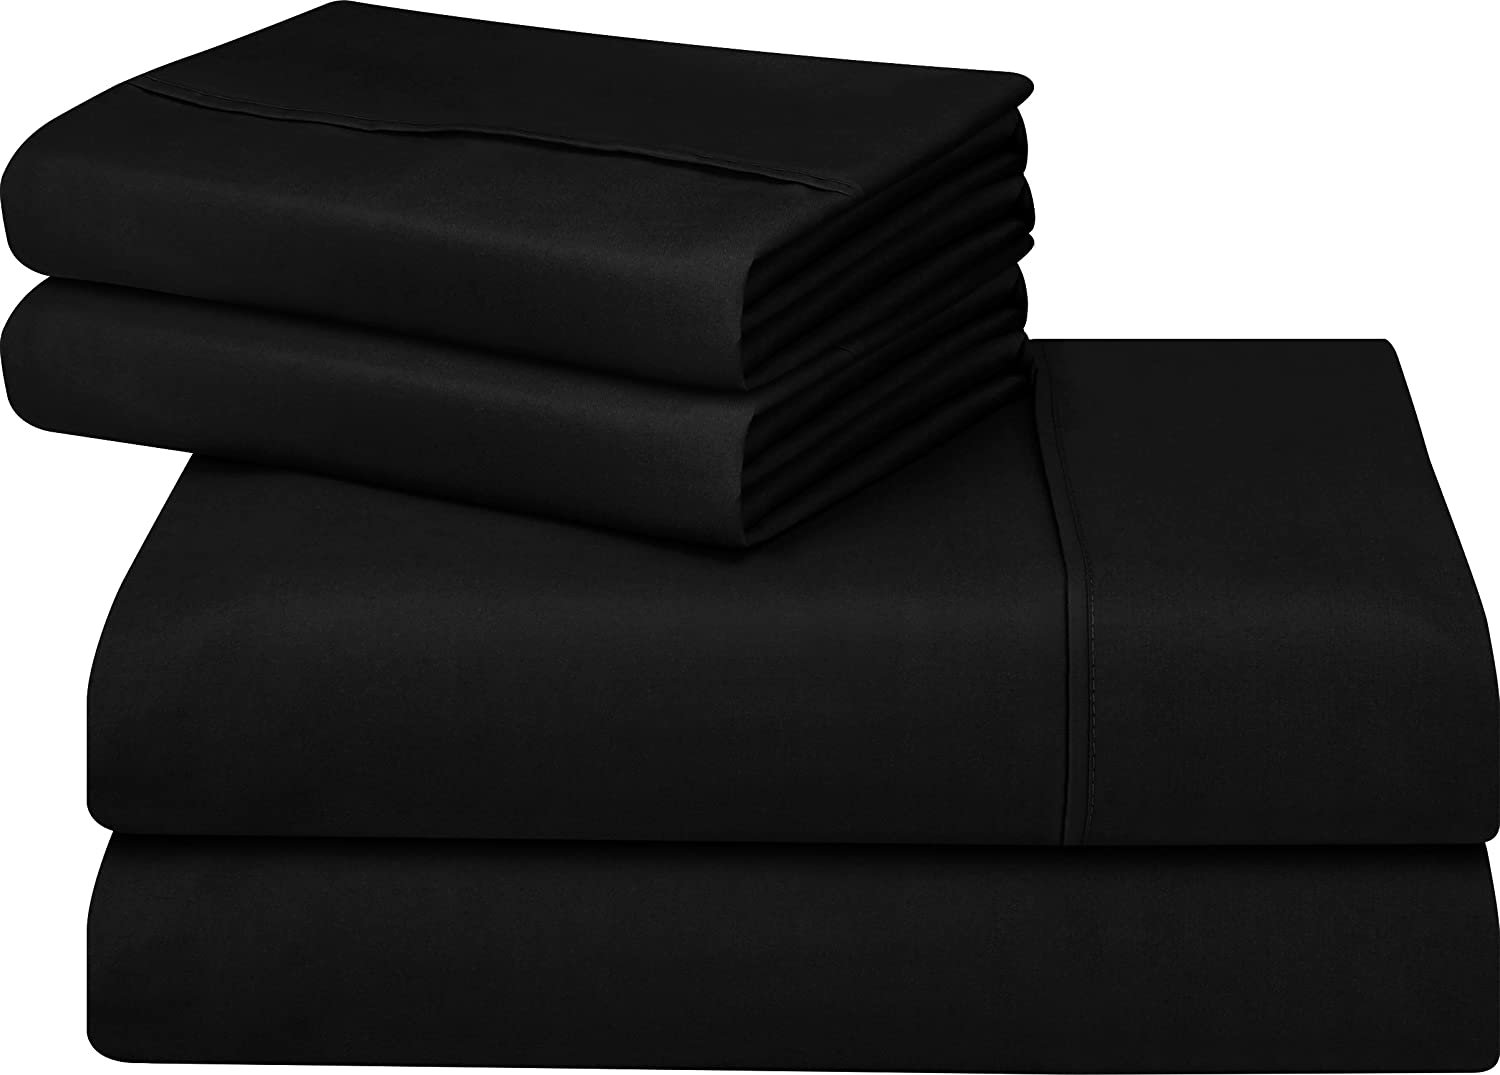 Utopia Bedding Soft Brushed Microfiber Wrinkle Fade and Stain Resistant 4-Piece Queen Bed Sheet Set - Black